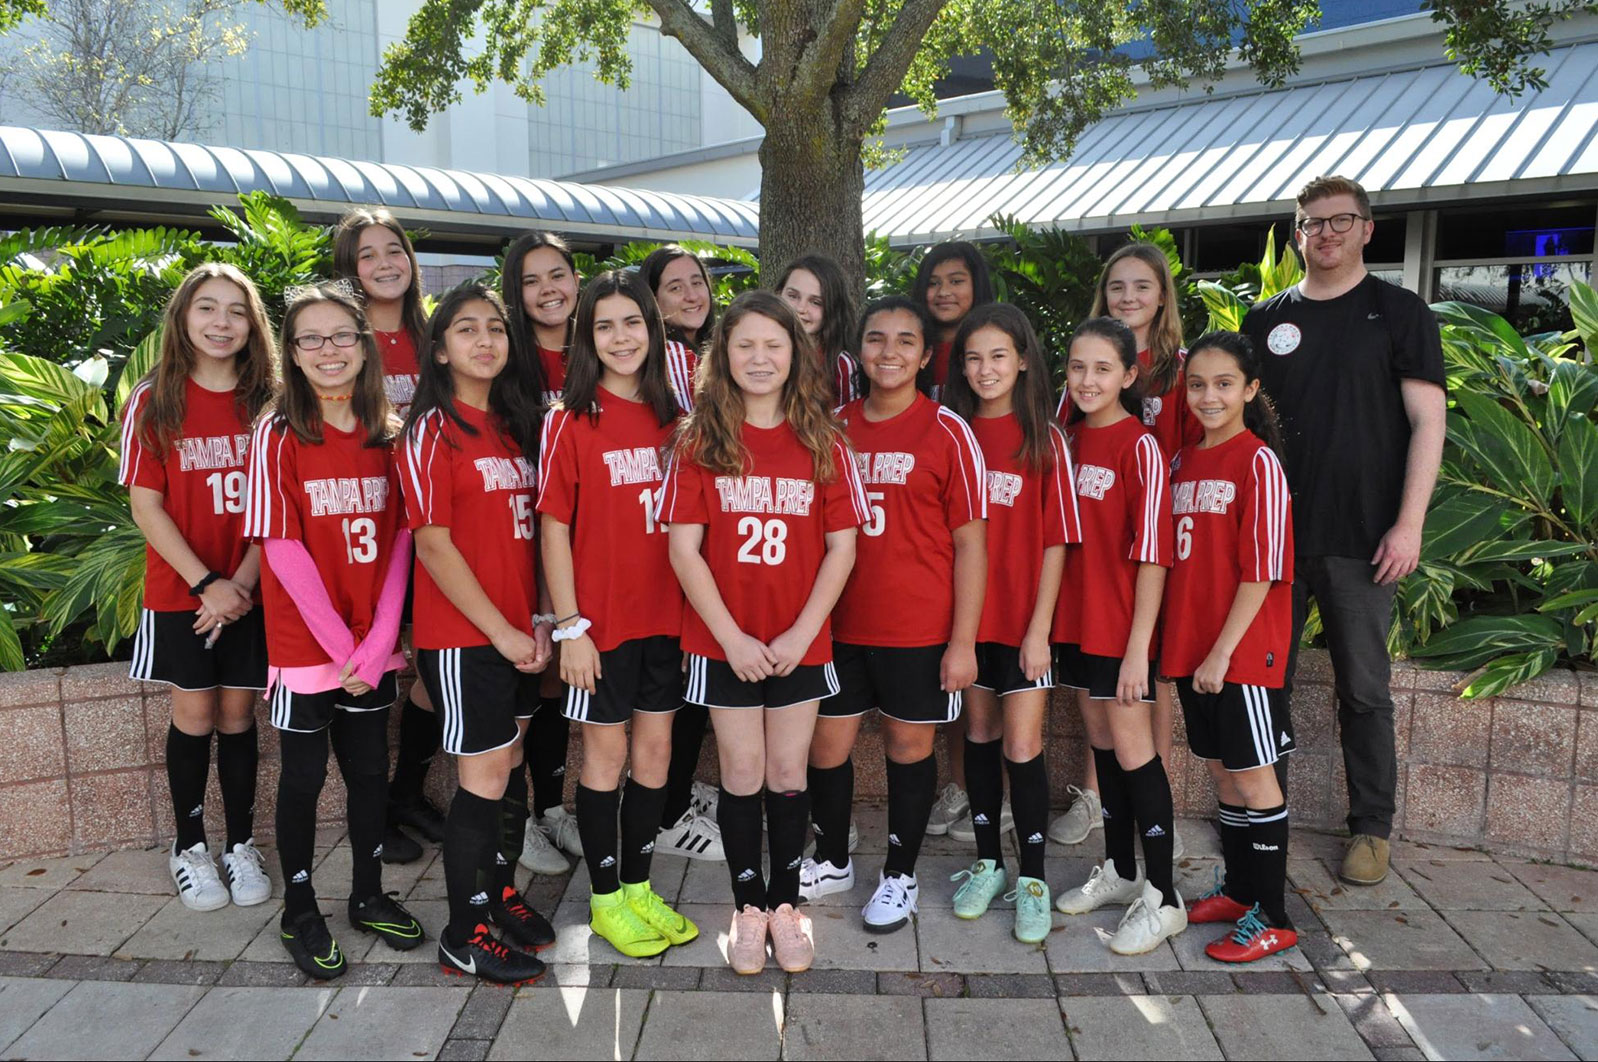 Middle School Girls Soccer team picture